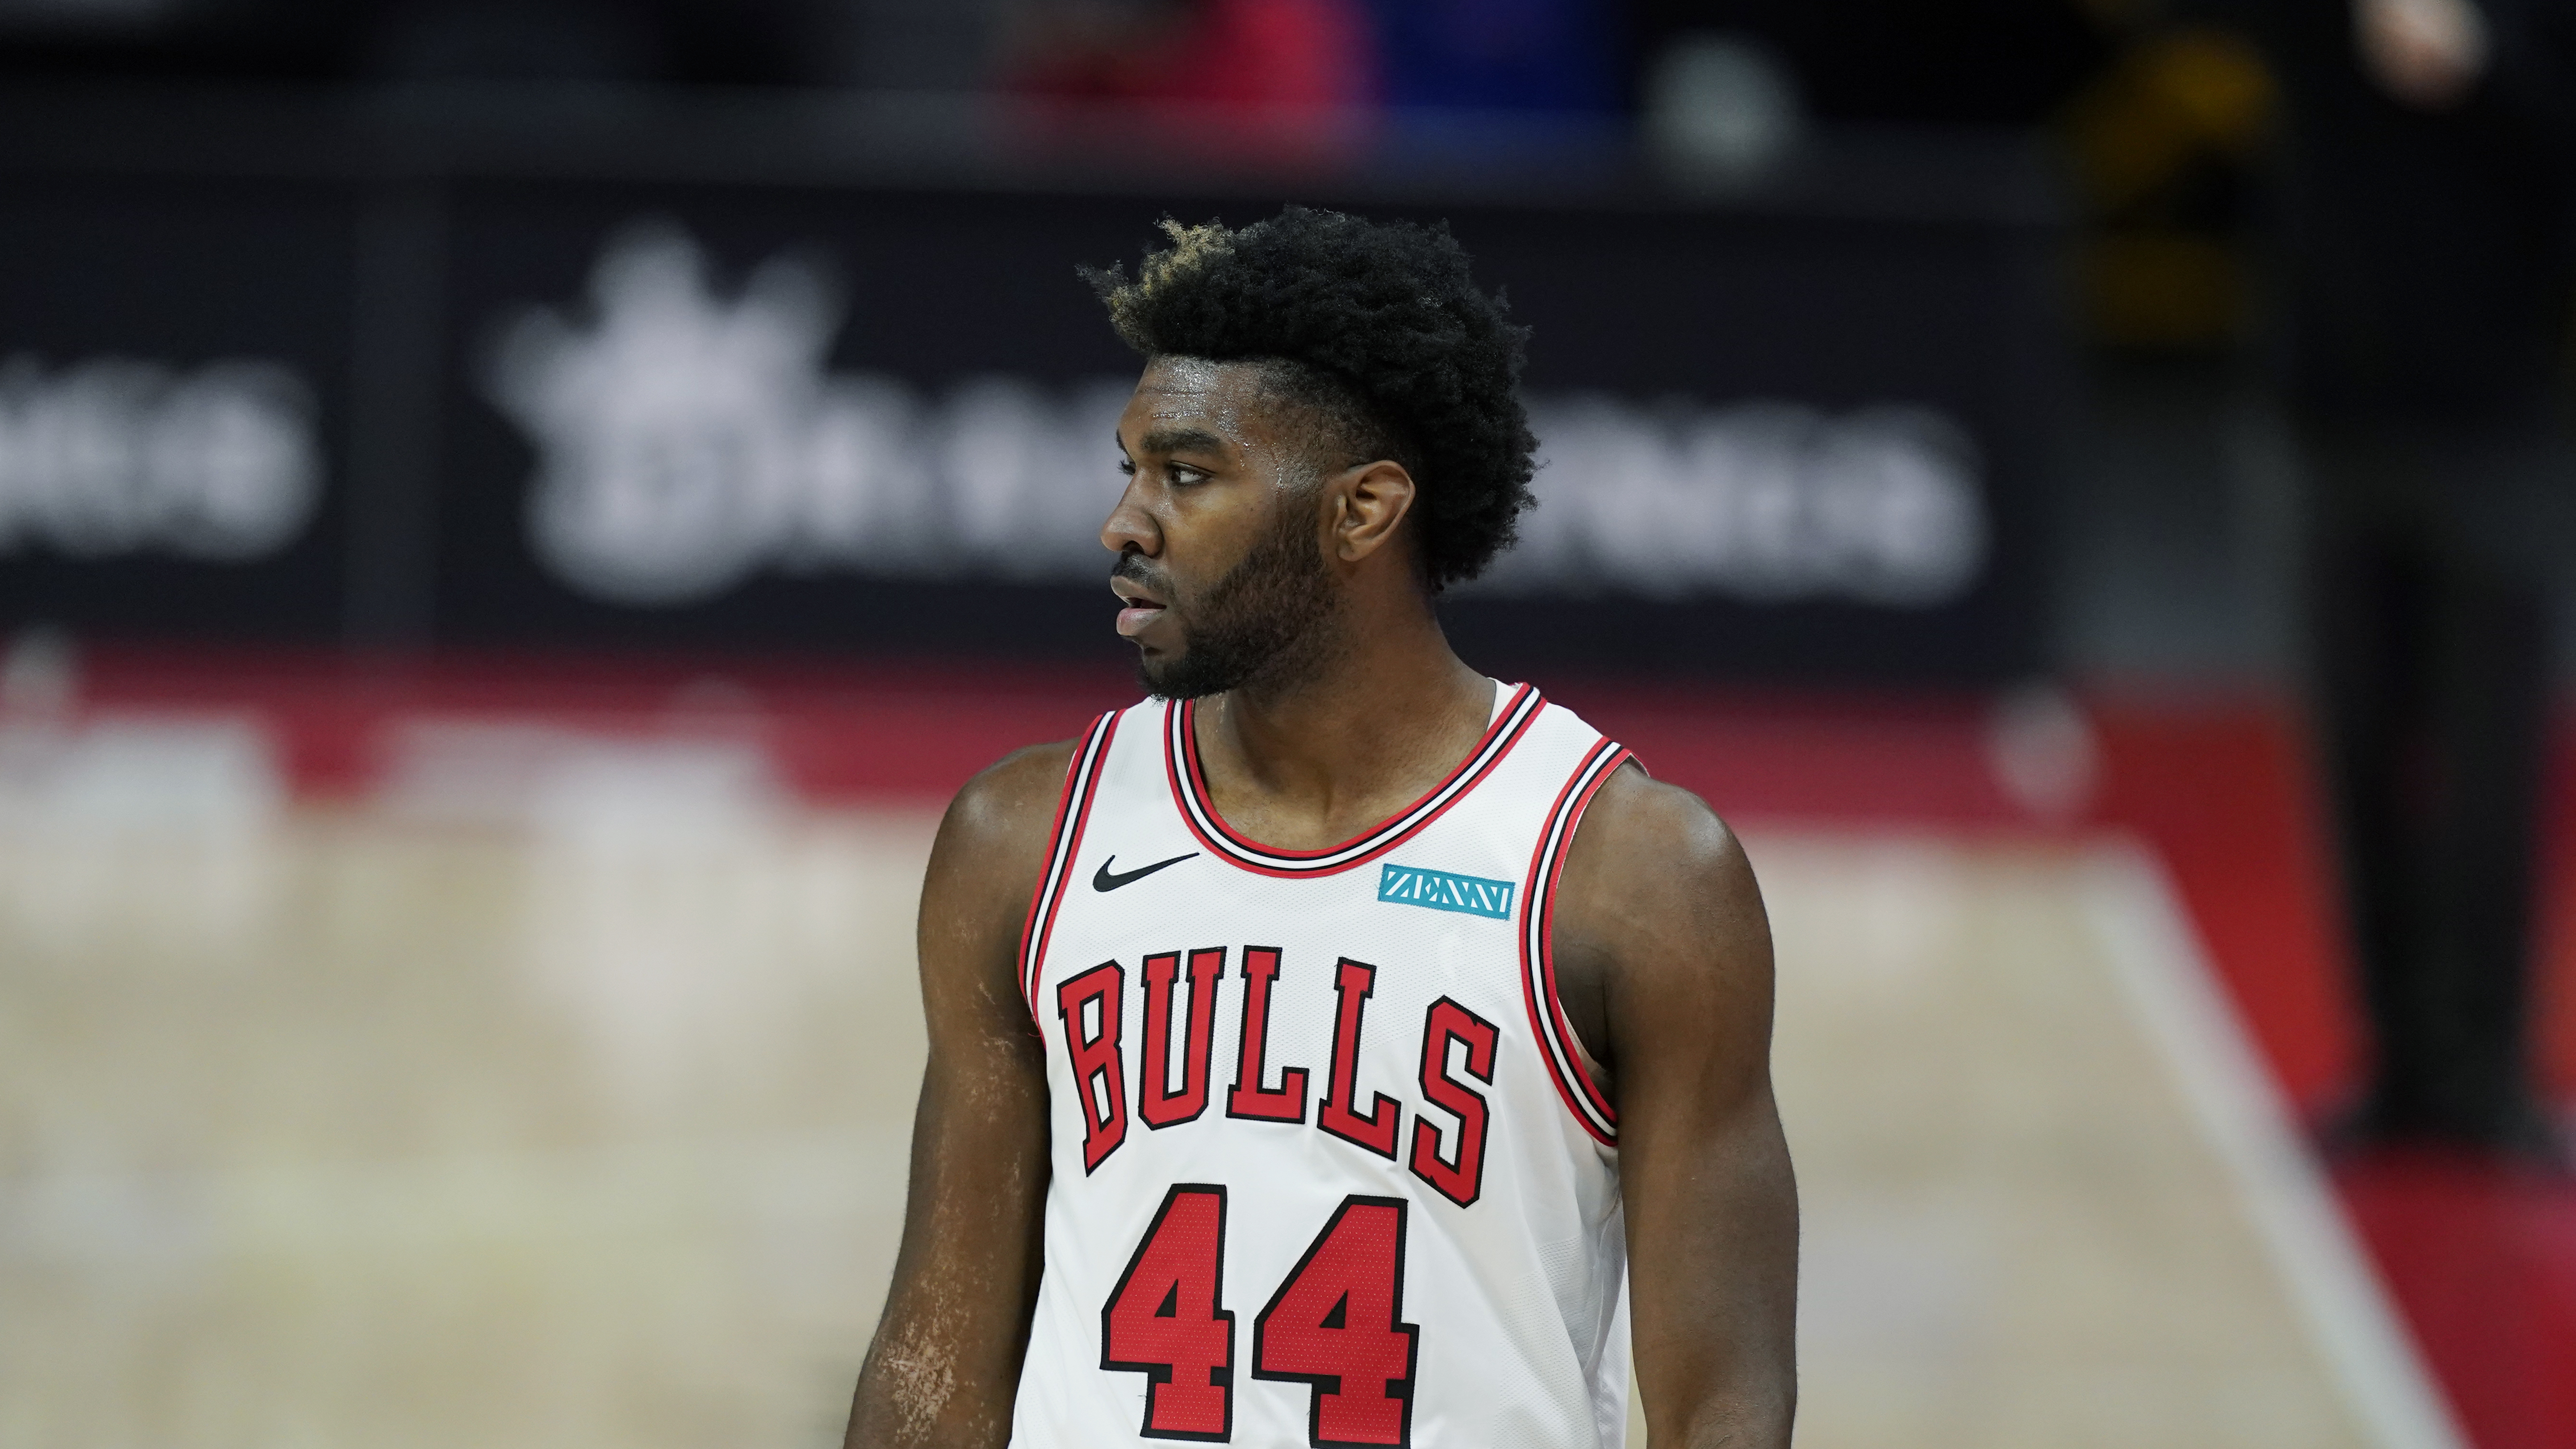 """""""You just gotta know what we've got to do — that's win,'' the Bulls' Patrick Williams said while discussing his attitude on the offensive end. """"So whatever it takes to win I'm good with it."""""""